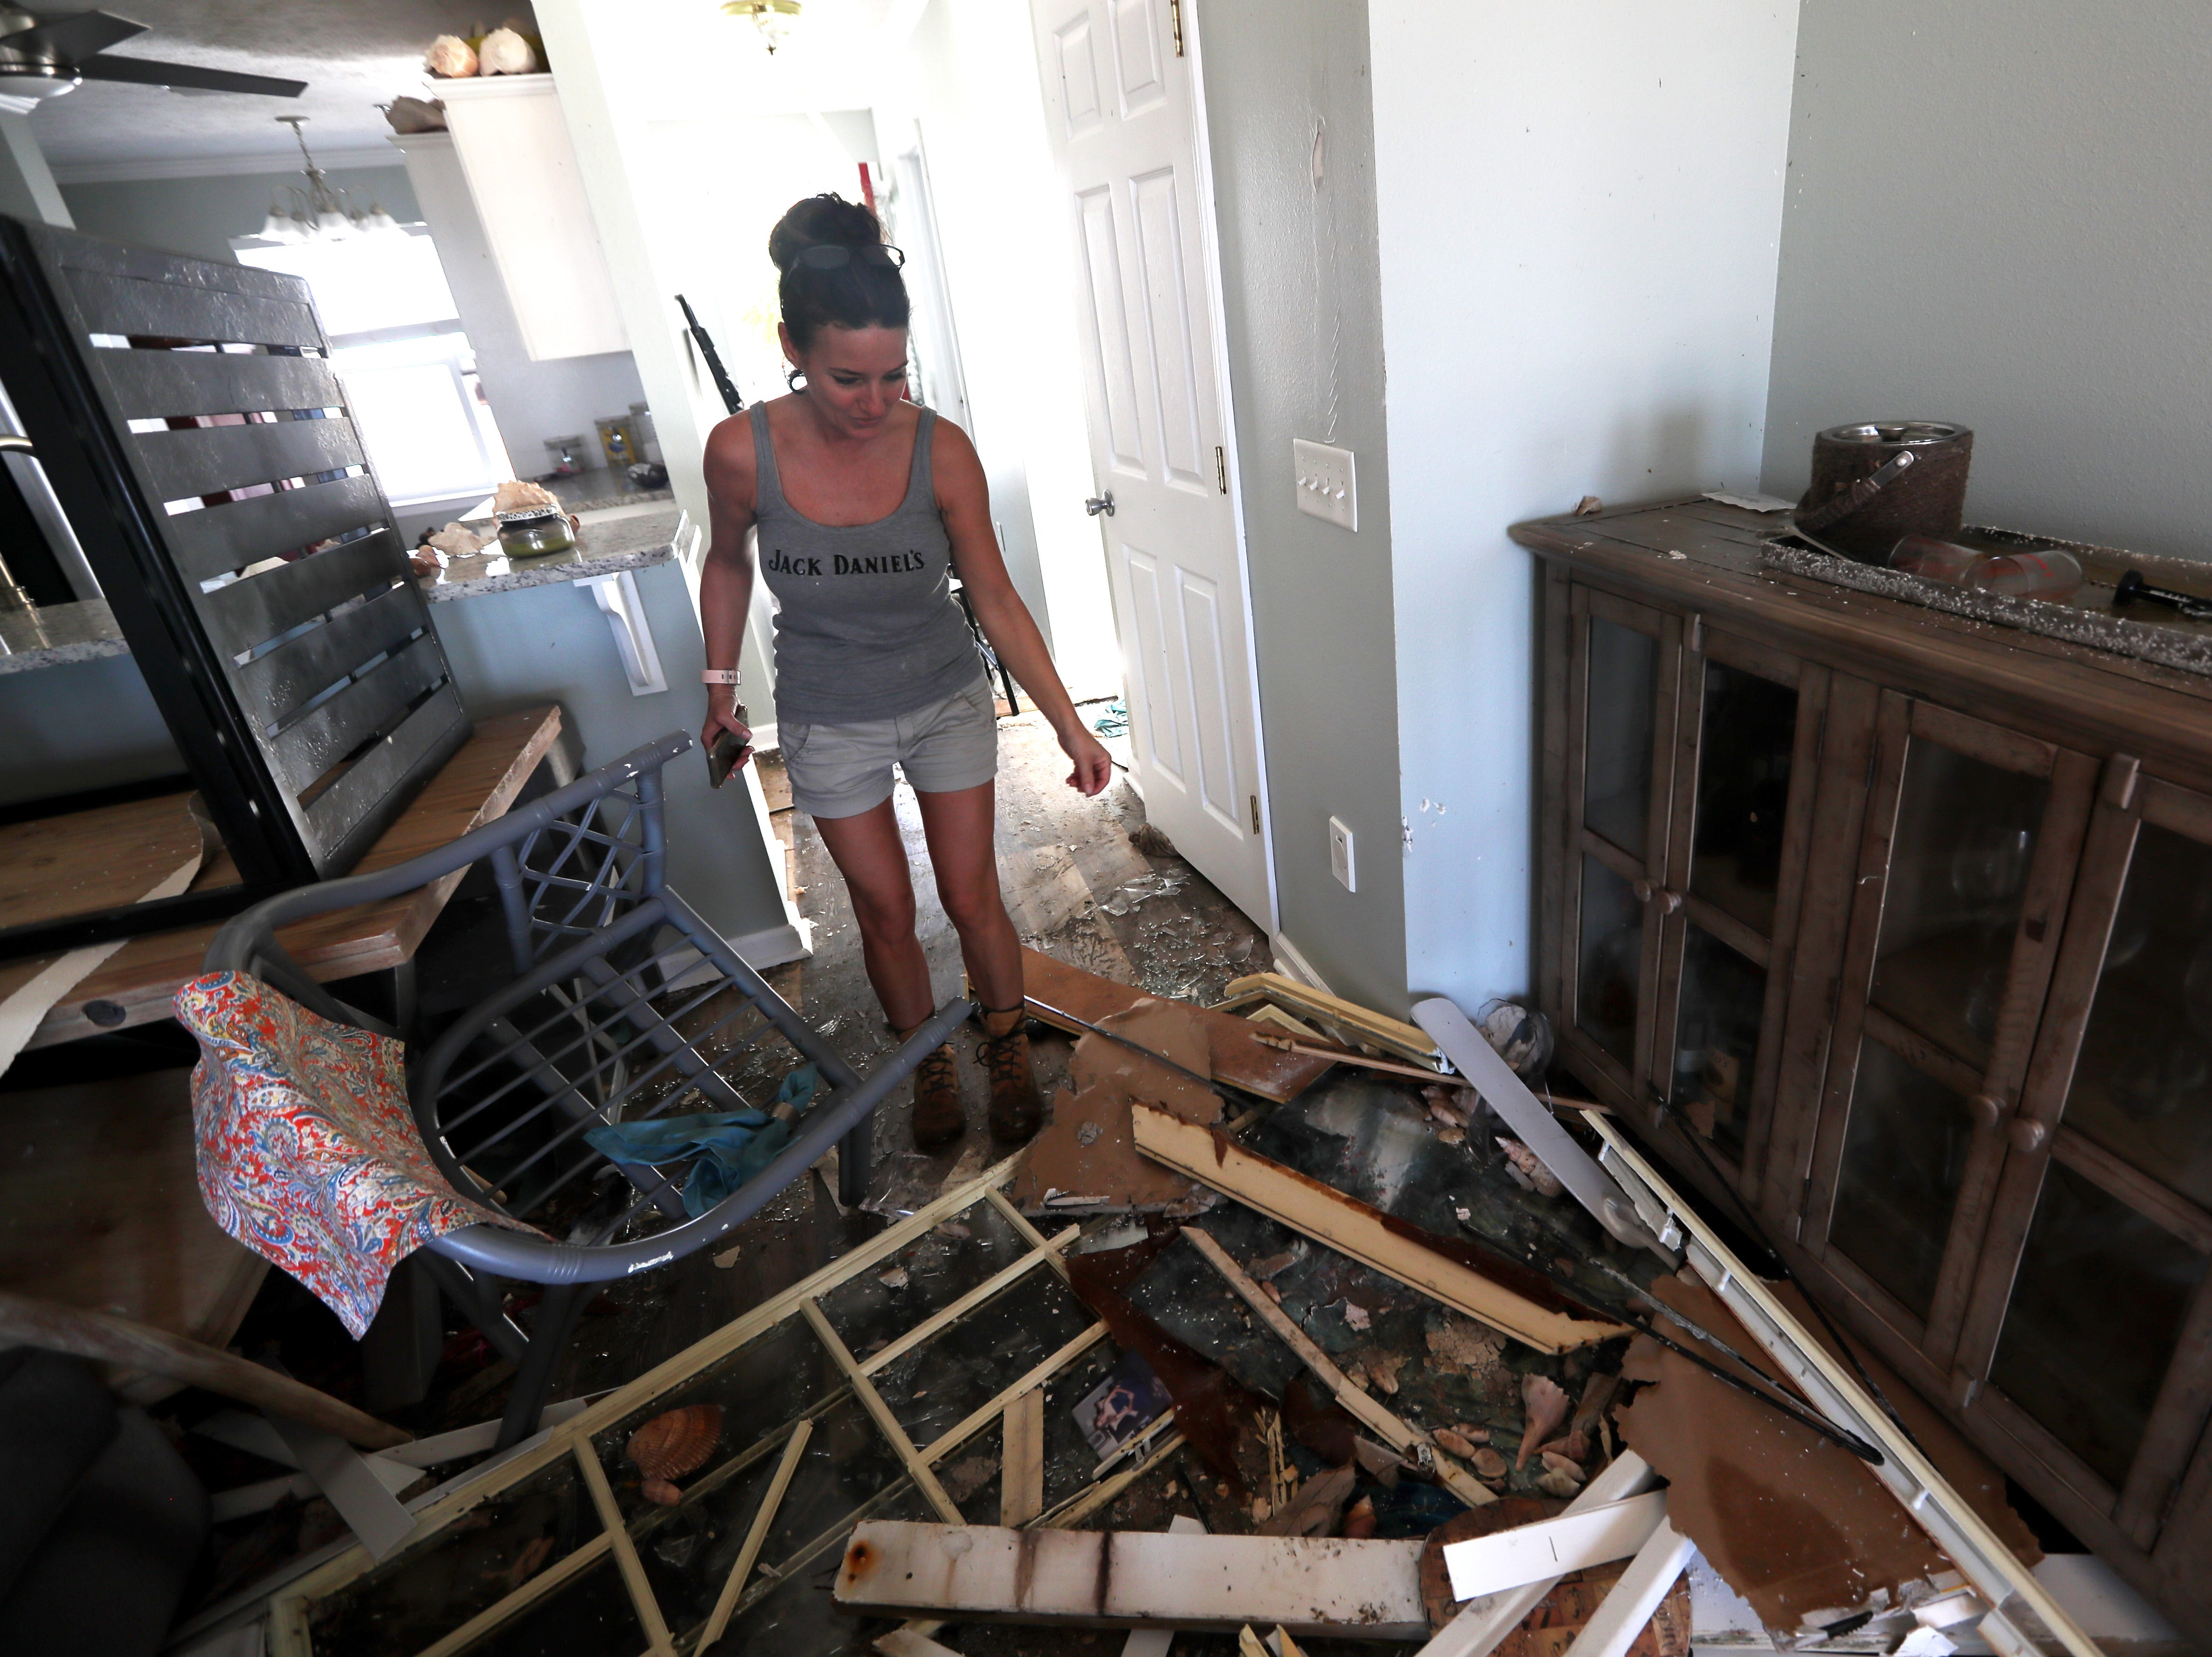 Kimberly Higdon looks over the broken debris that is left of her living room at her Mexico Beach condo on Wednesday, Oct. 17, 2018, one week after Hurricane Michael ripped through the coastal Florida town.